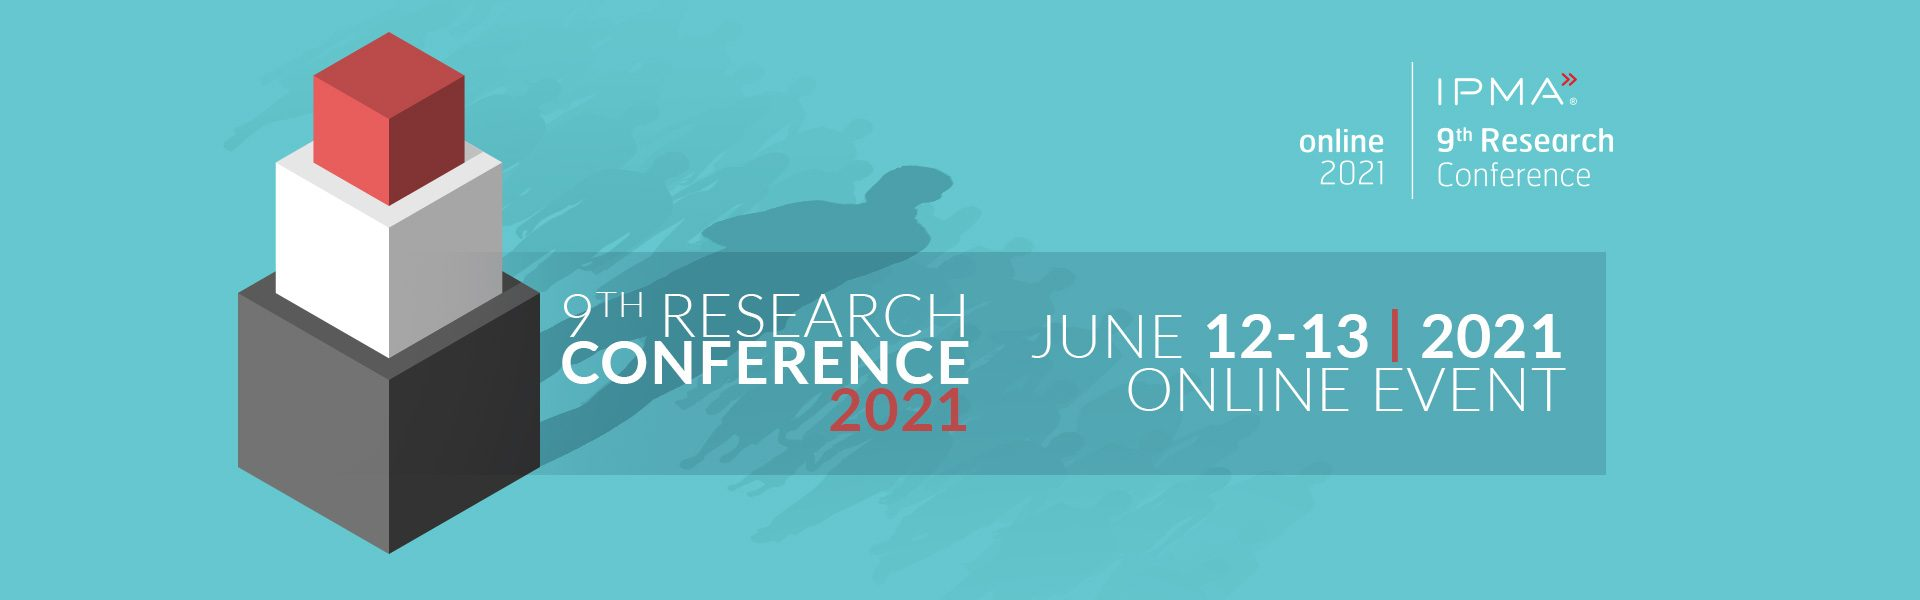 9TH IPMA RESEARCH CONFERENCE